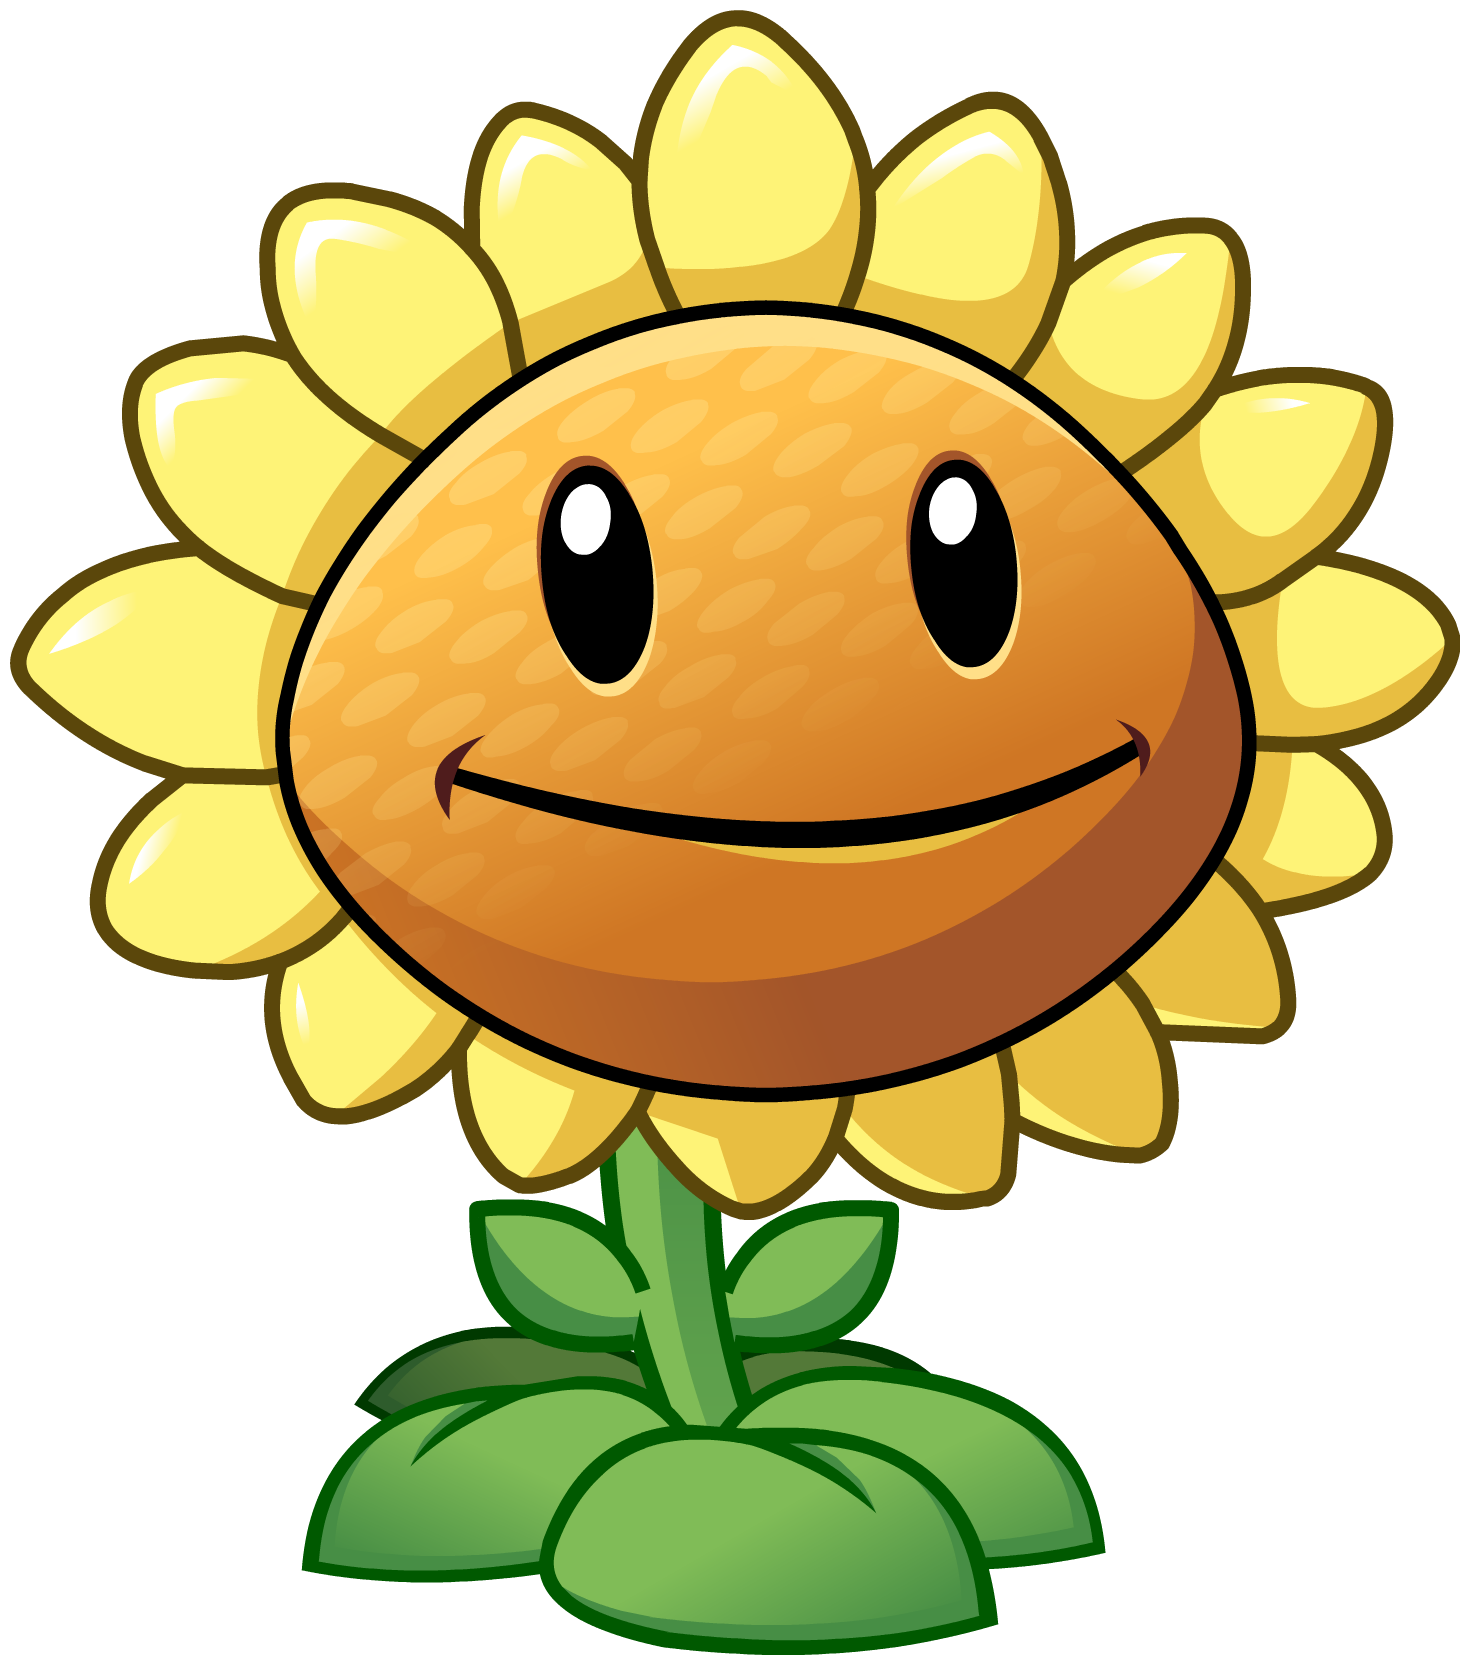 Plants Vs Zombies 2 Sunflower Google Search Plantas Zombies Plantas Vs Zombies Personajes Plantas Versus Zombies